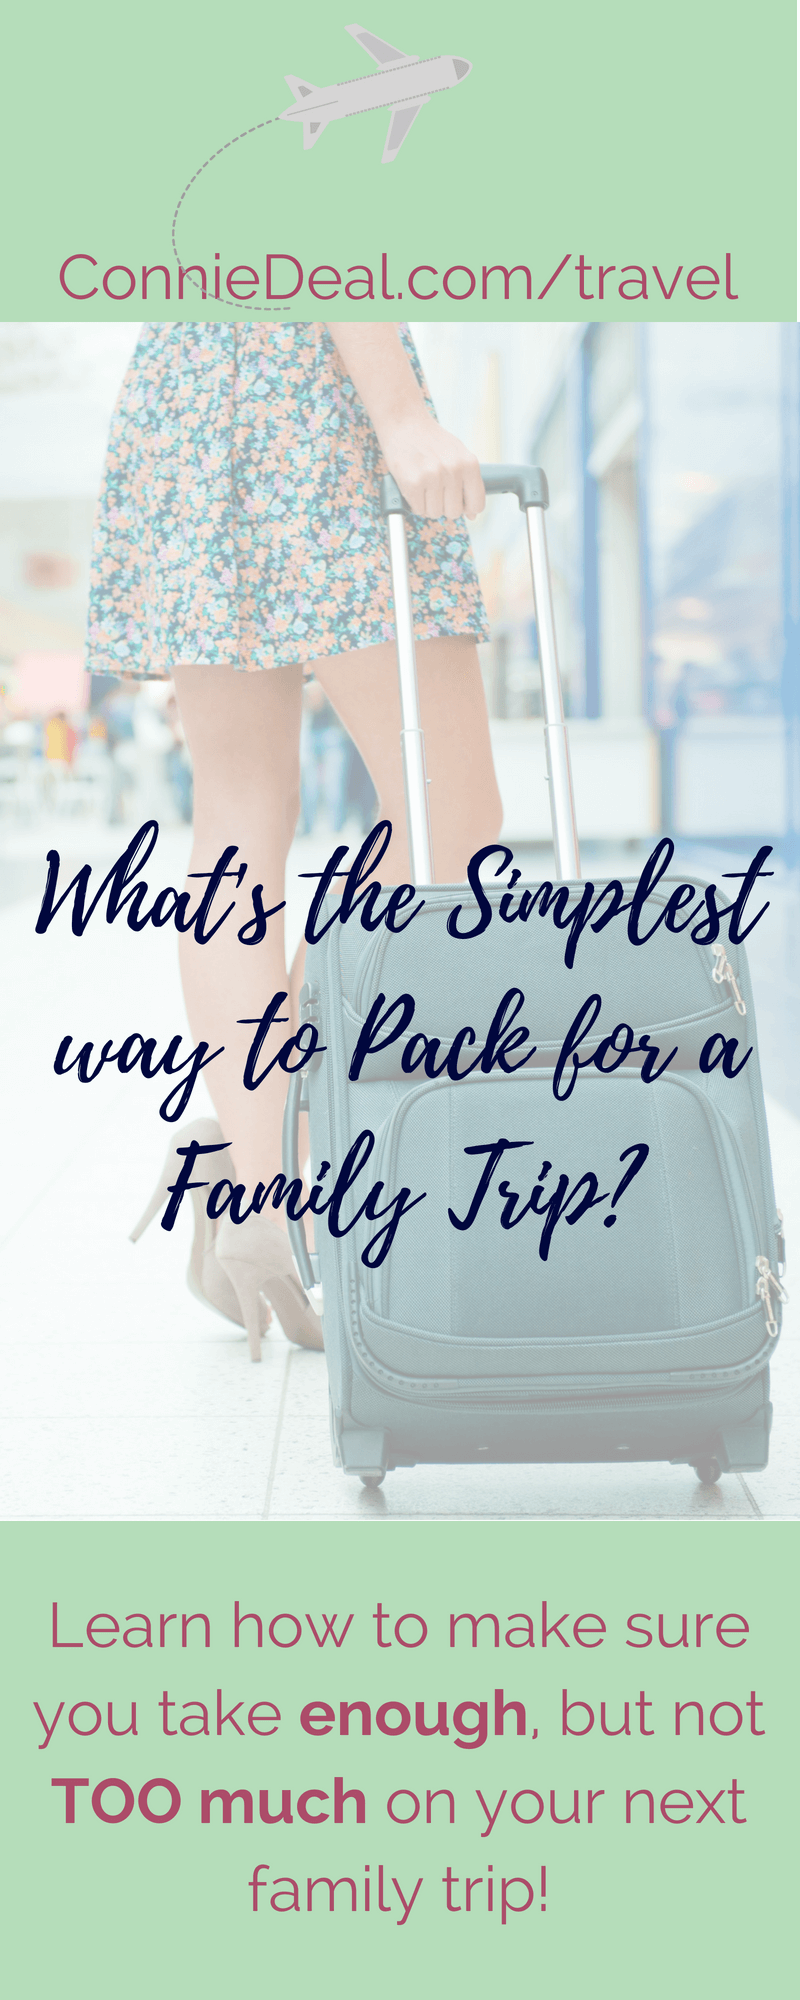 Make packing for a #familytrip easier and less stressful with my simple 5 step plan. And, rest assured that you have everything you need, but not TOO much! #travel #summertravel #travellingwithtoddlers #travelingwithkids